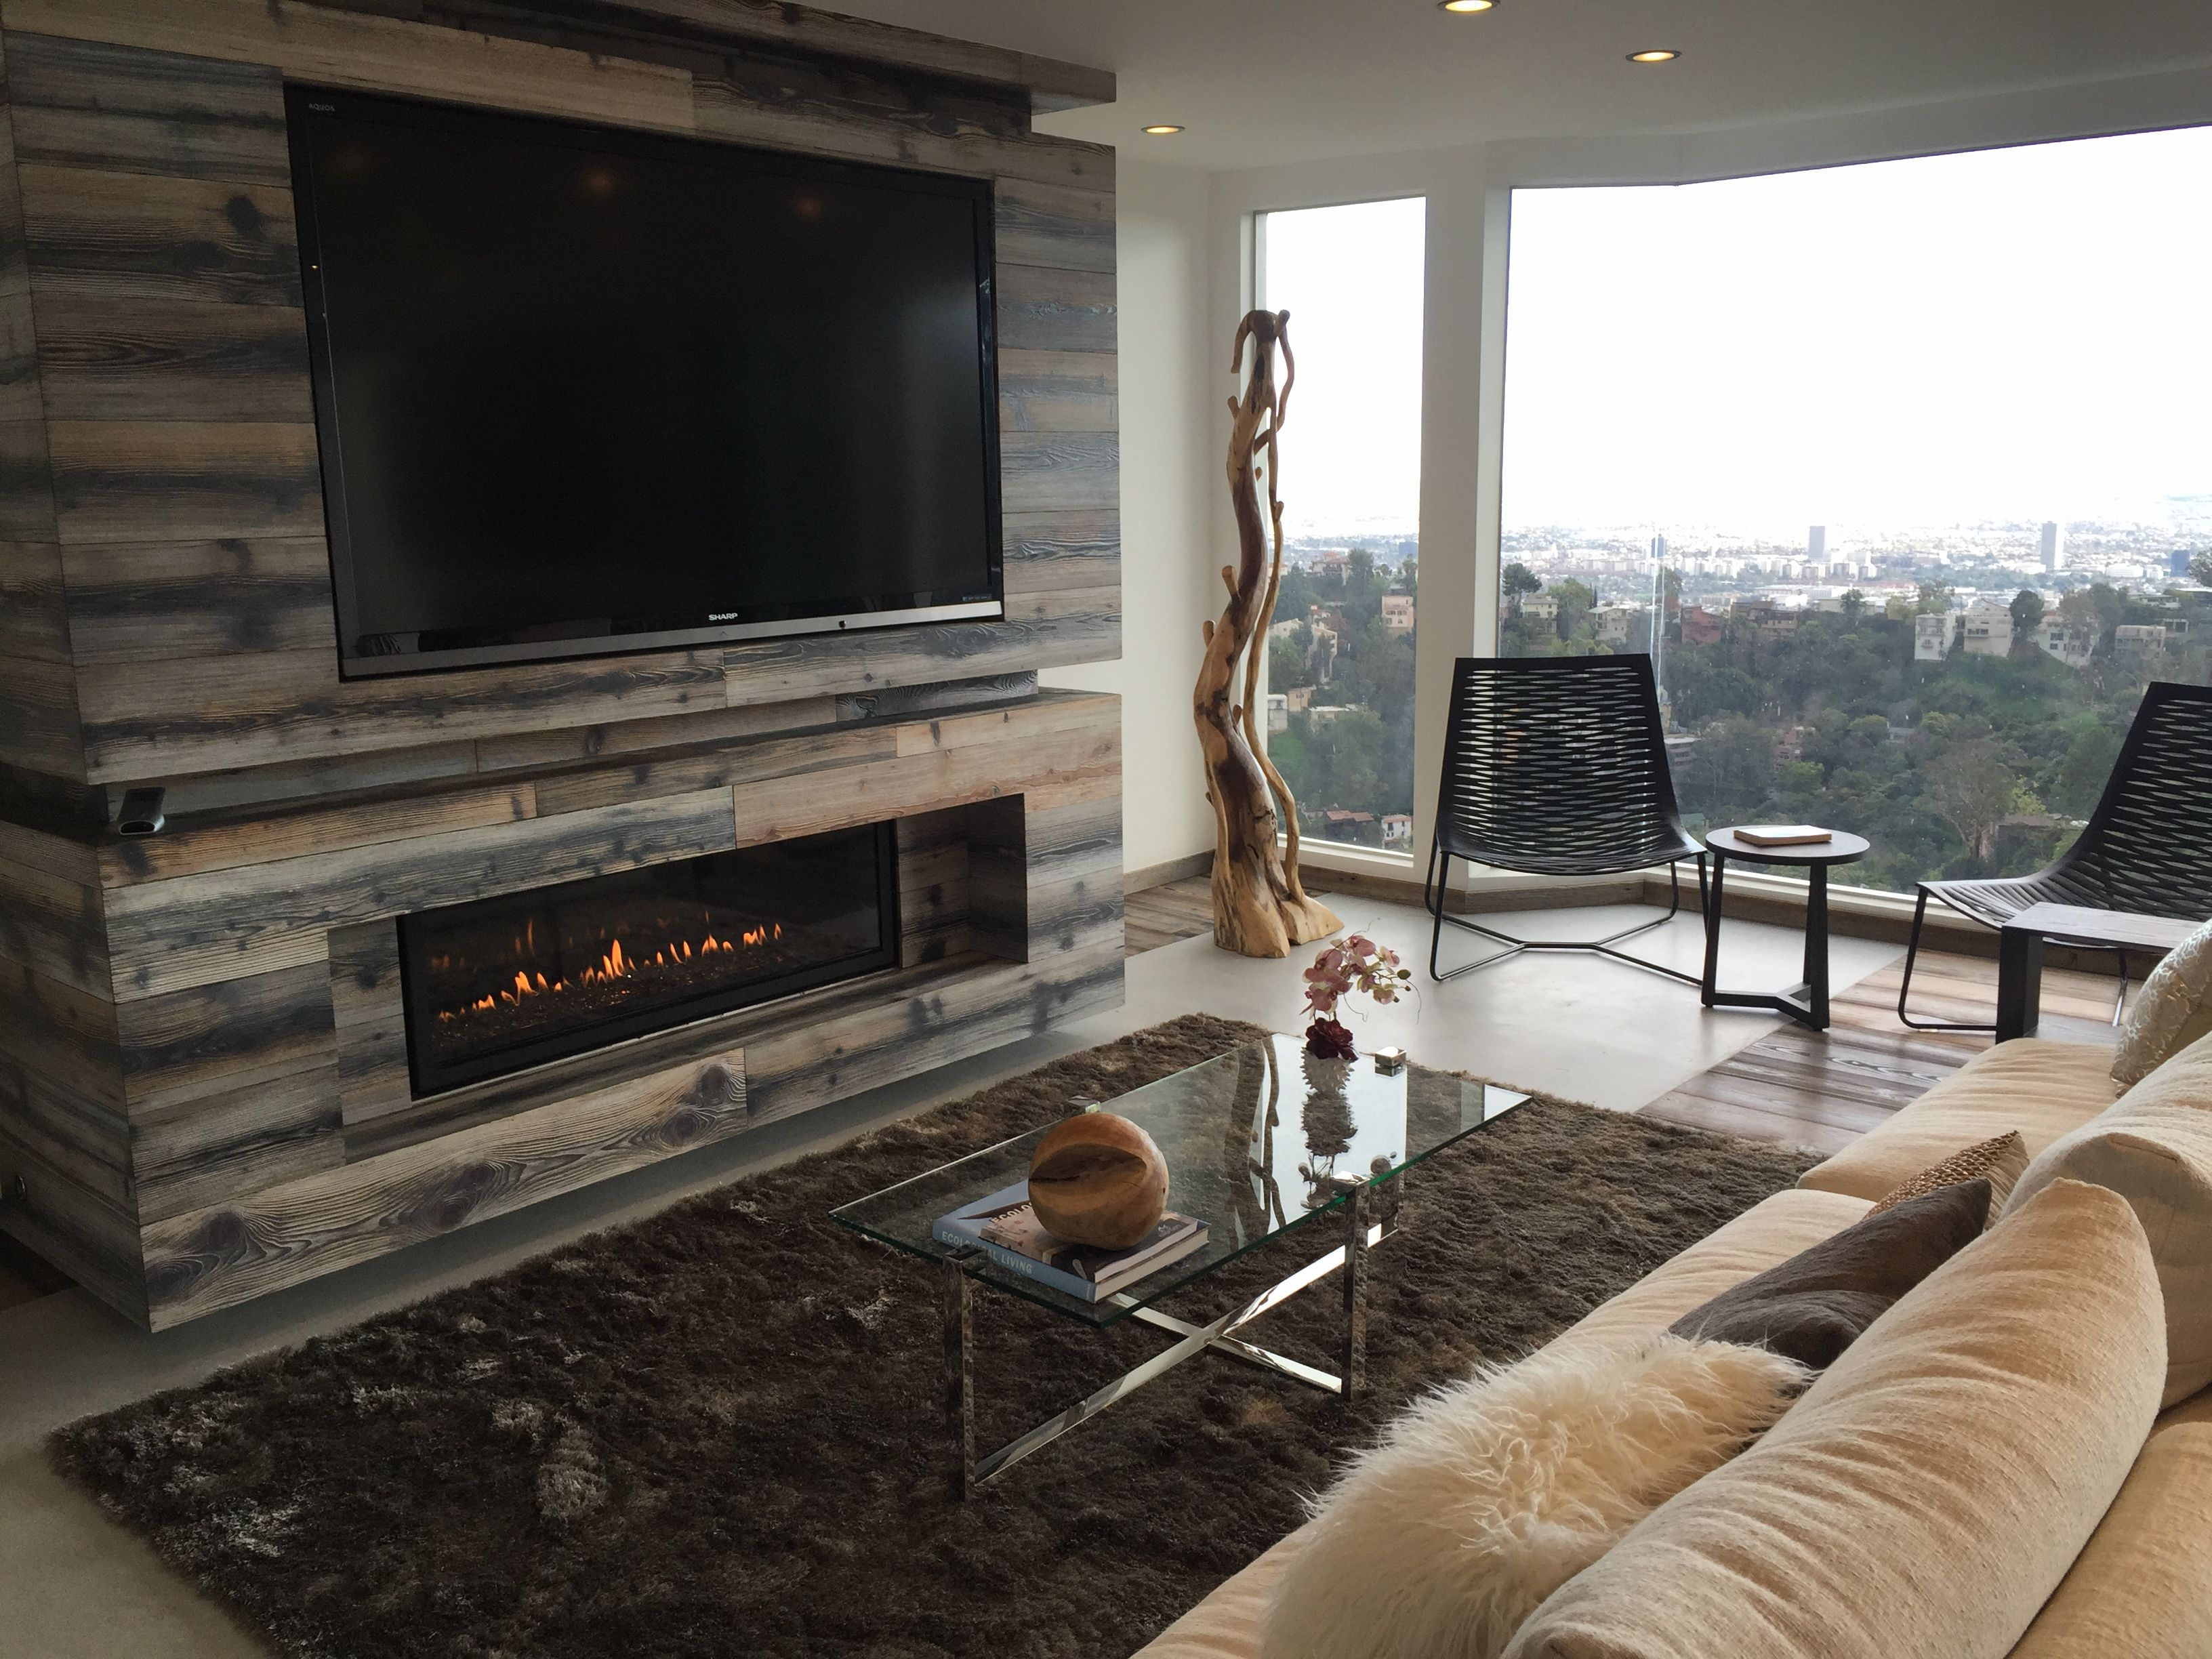 low profile gas fireplace with tv above; tv is too high for